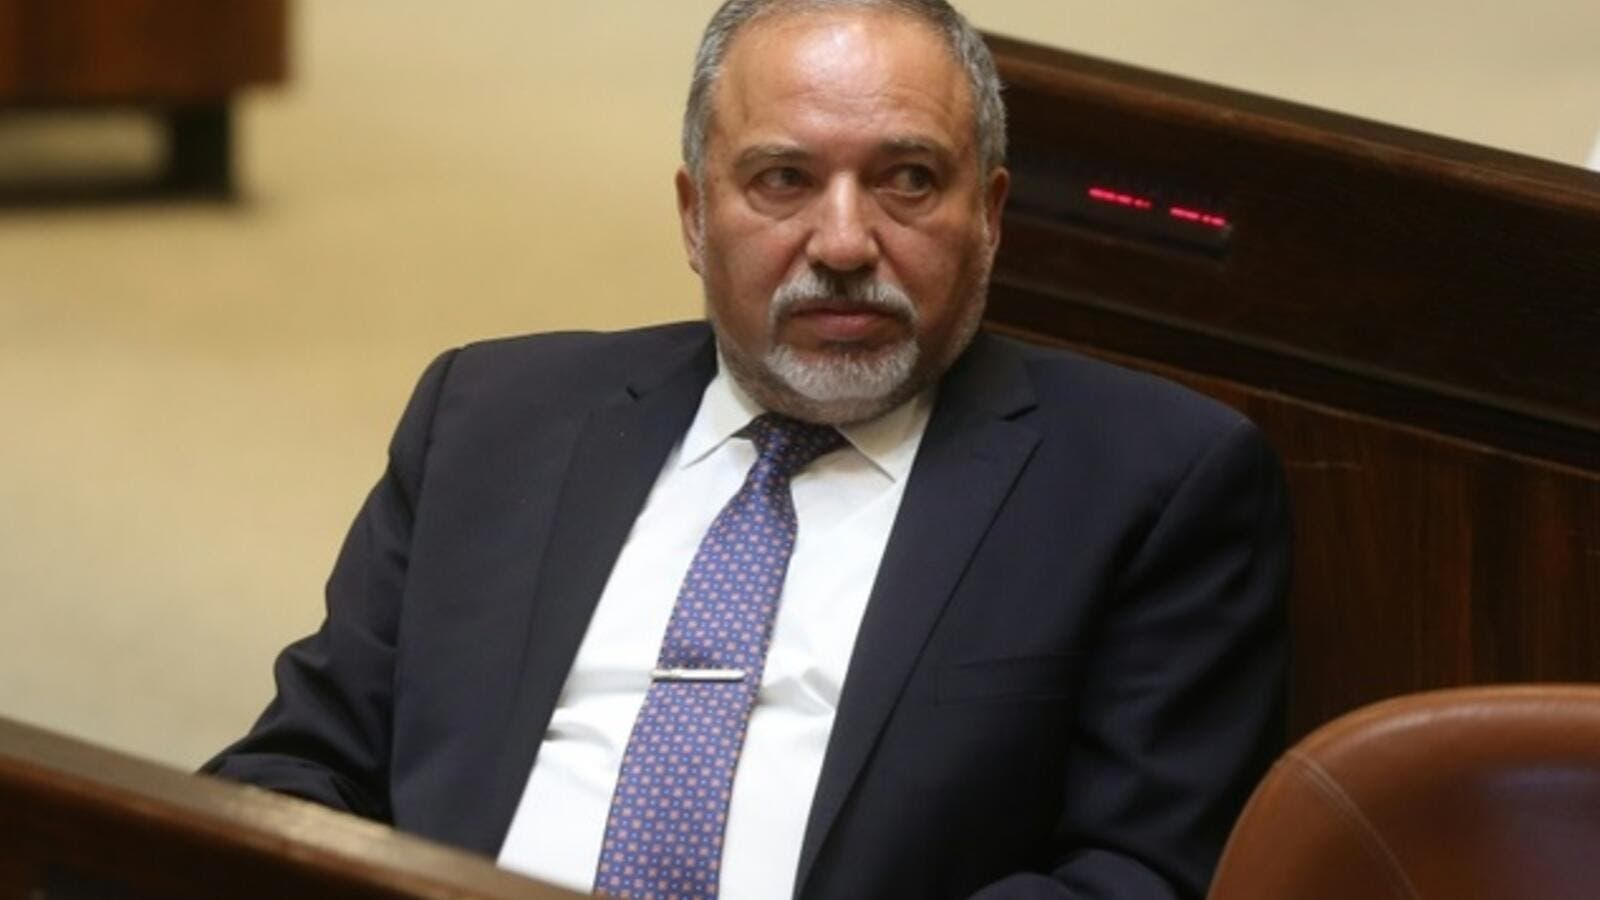 Former Israeli foreign minister and ultra-nationalist MP Avigdor Lieberman is seen during a session of the Israeli parliament on May 30, 2016. (AFP/File)